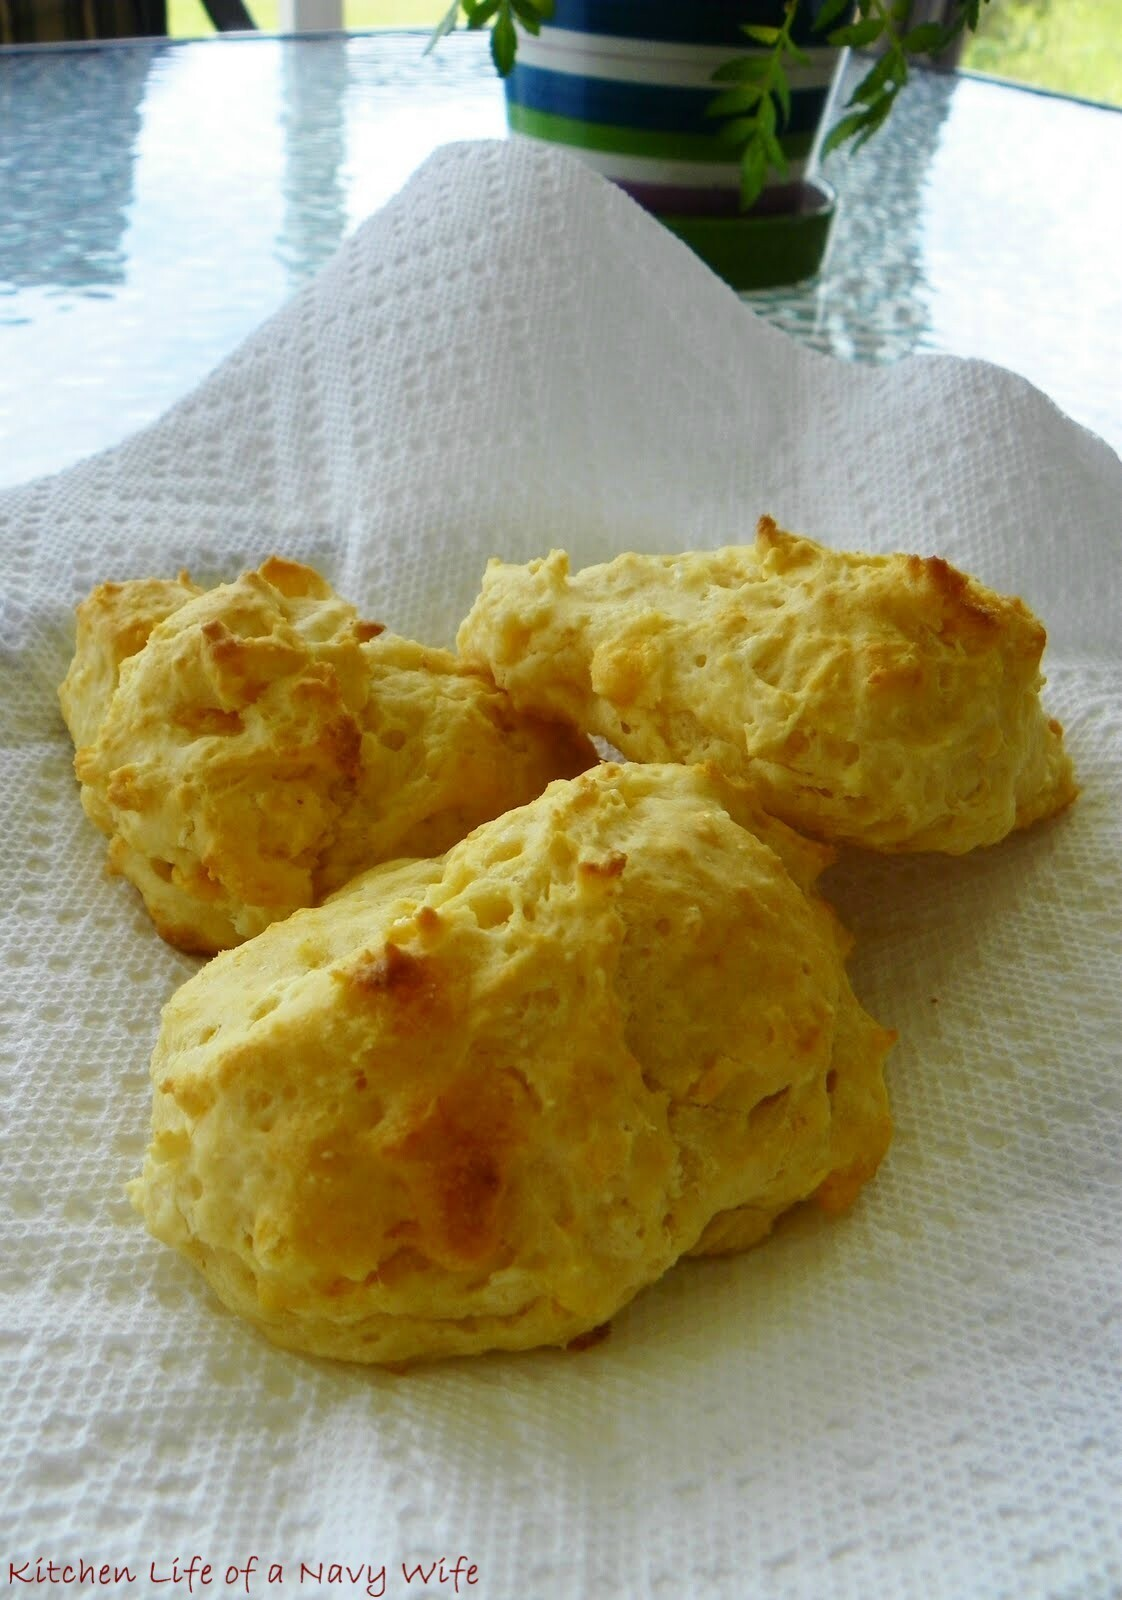 Cheddar Garlic Biscuits...A Great Snack!